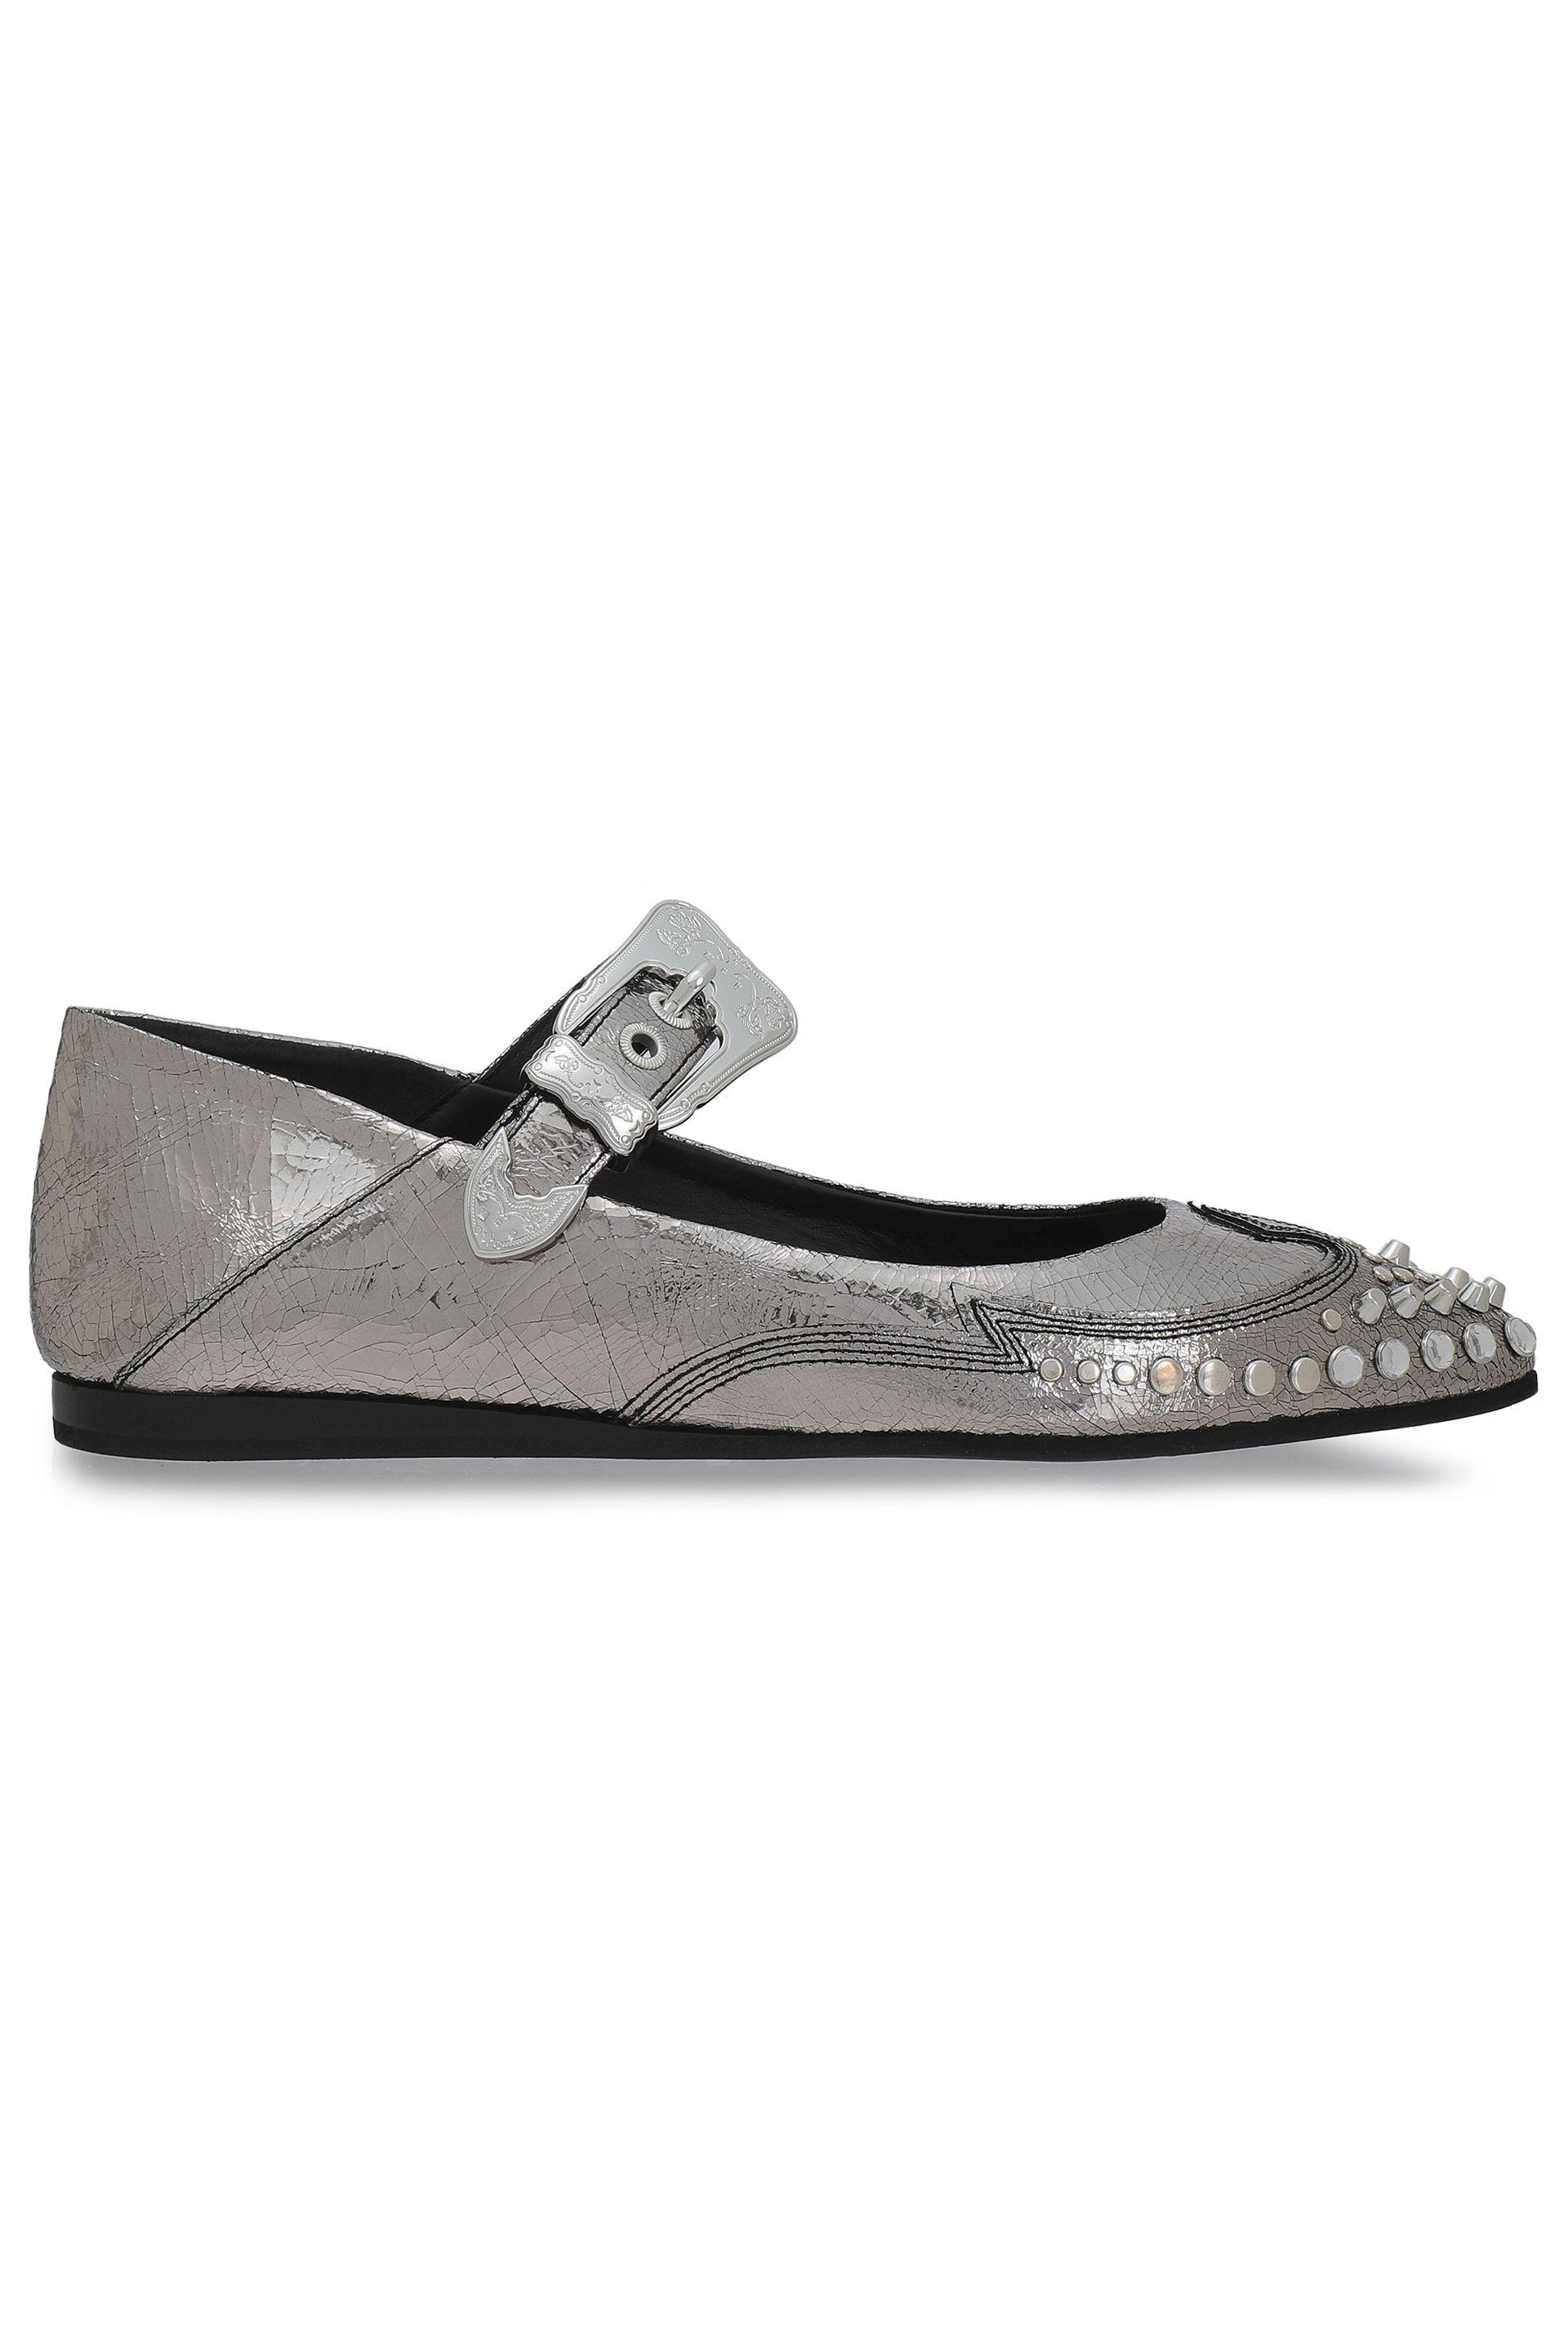 393174a33cd Lyst - McQ Woman Studded Metallic Cracked-leather Point-toe Flats ...